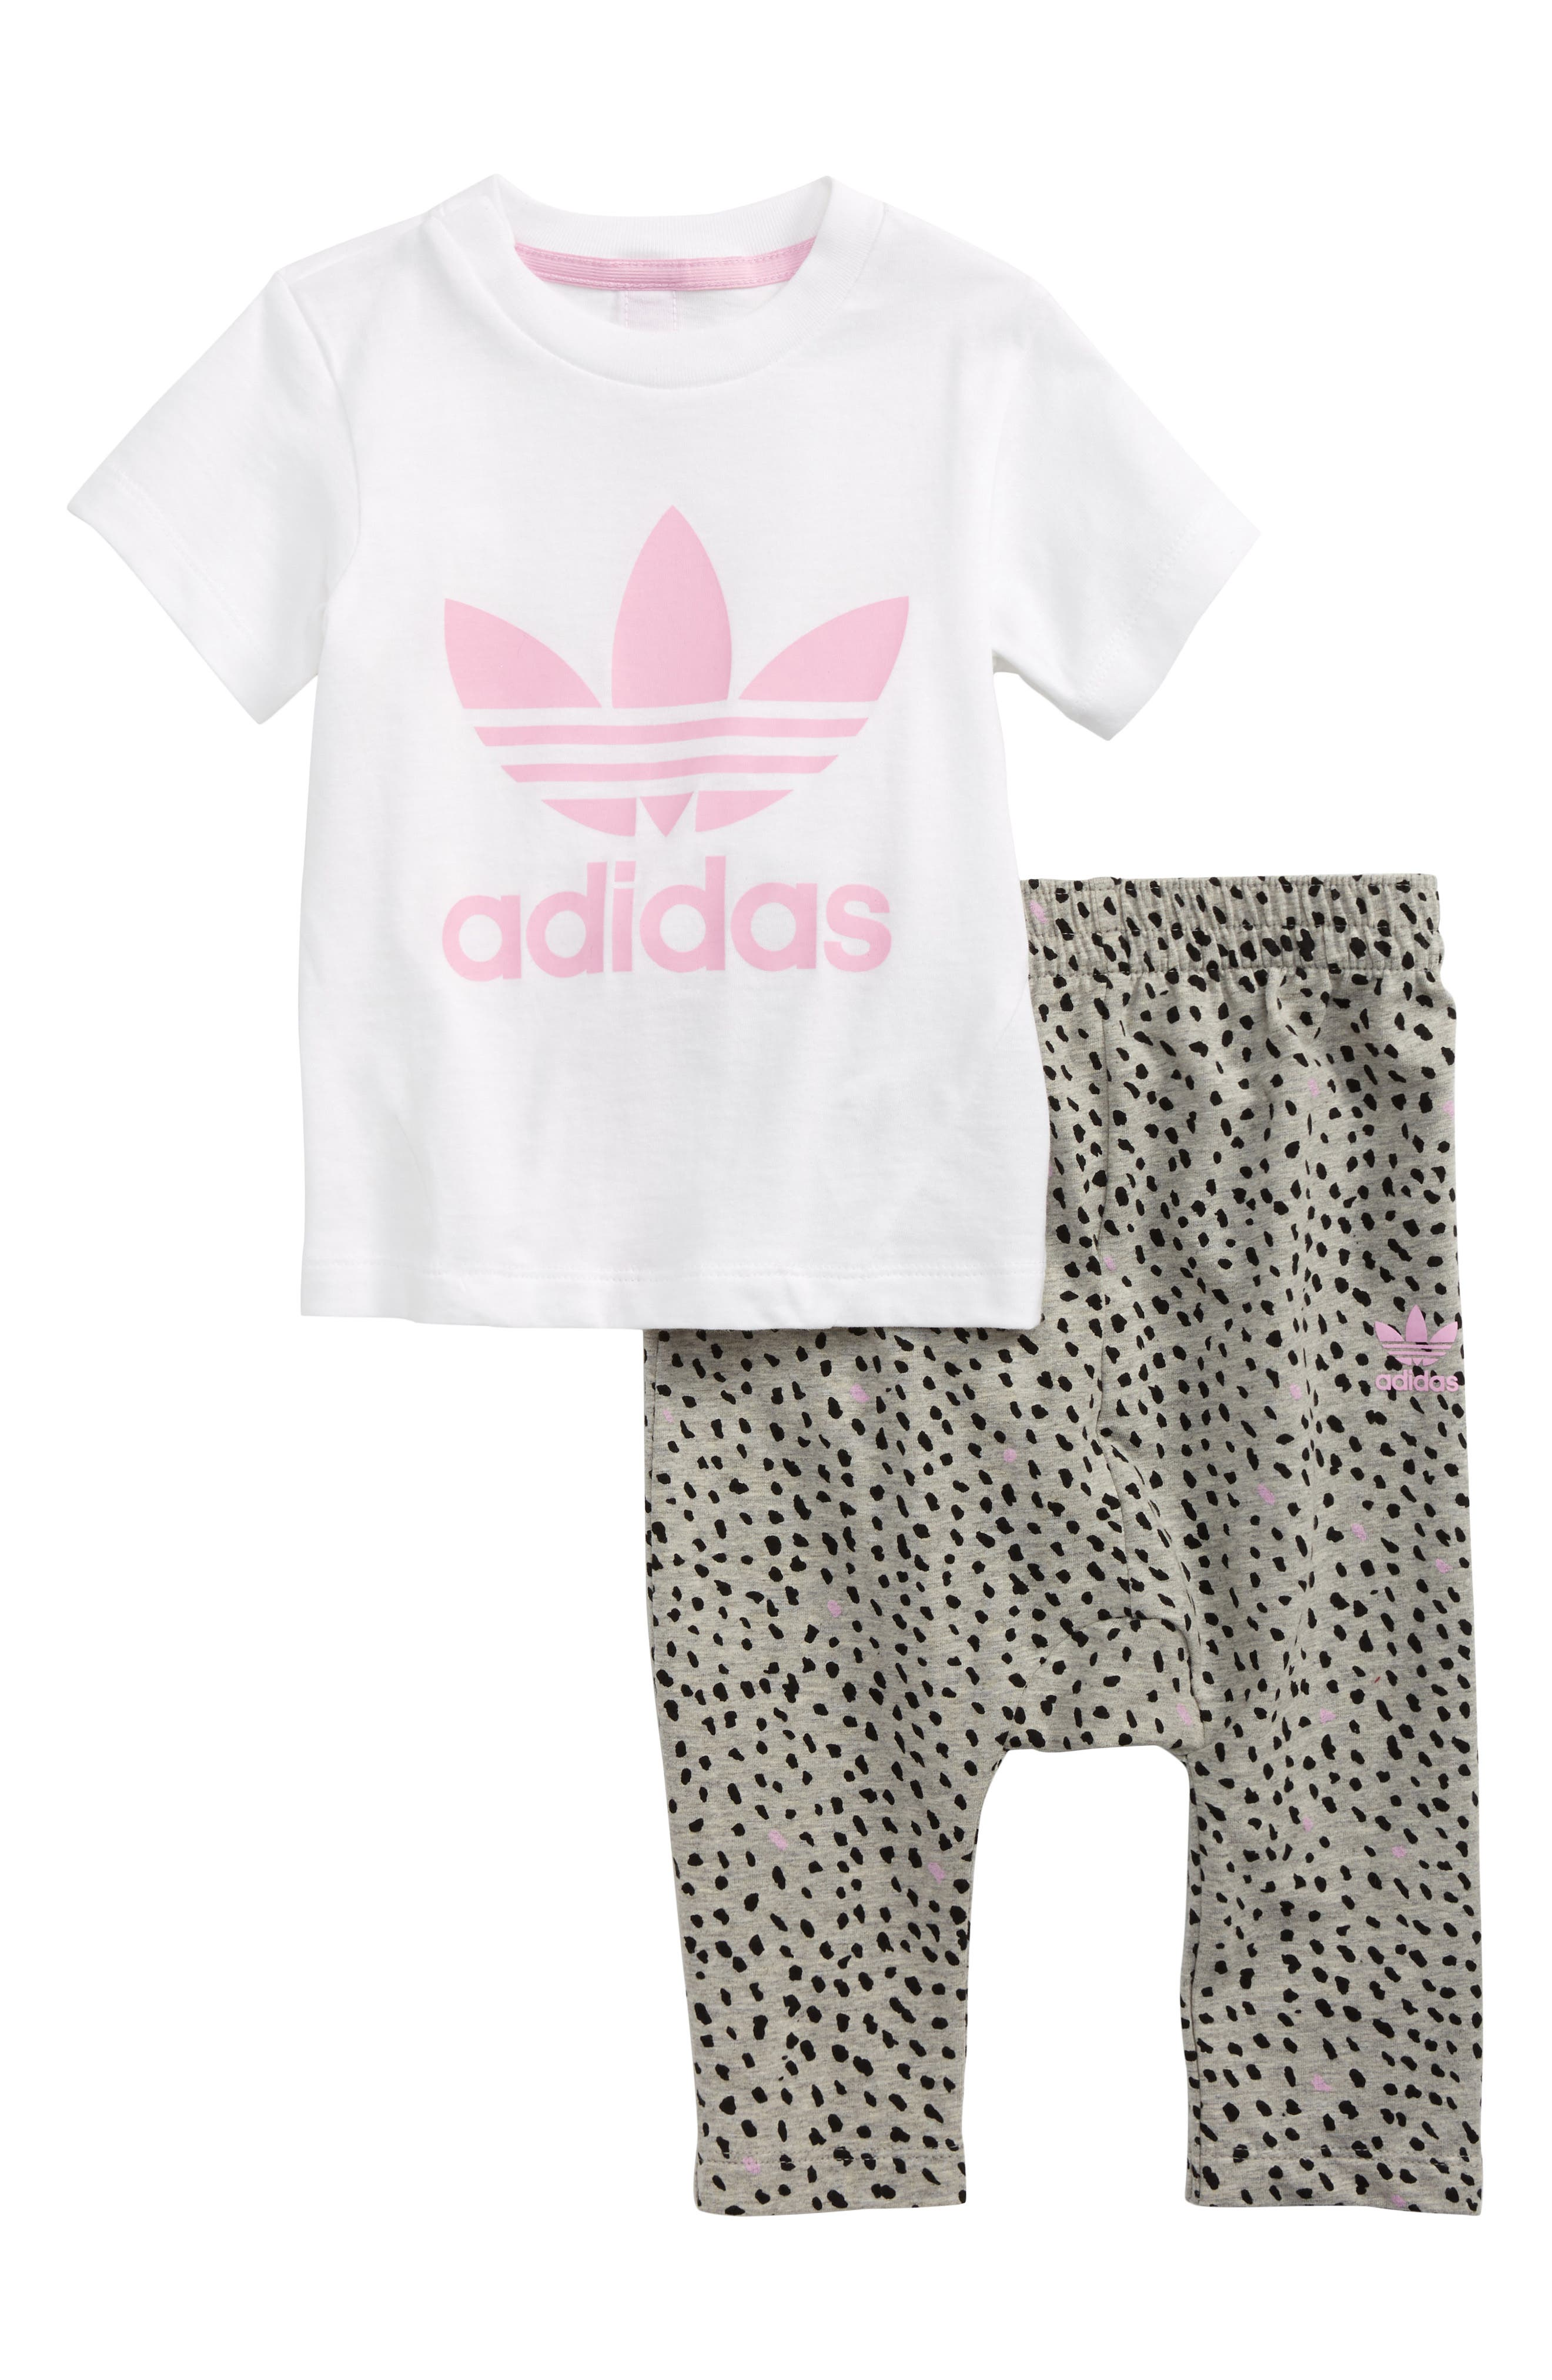 adidas Originals Logo Tee & Print Leggings Set (Baby Girls)